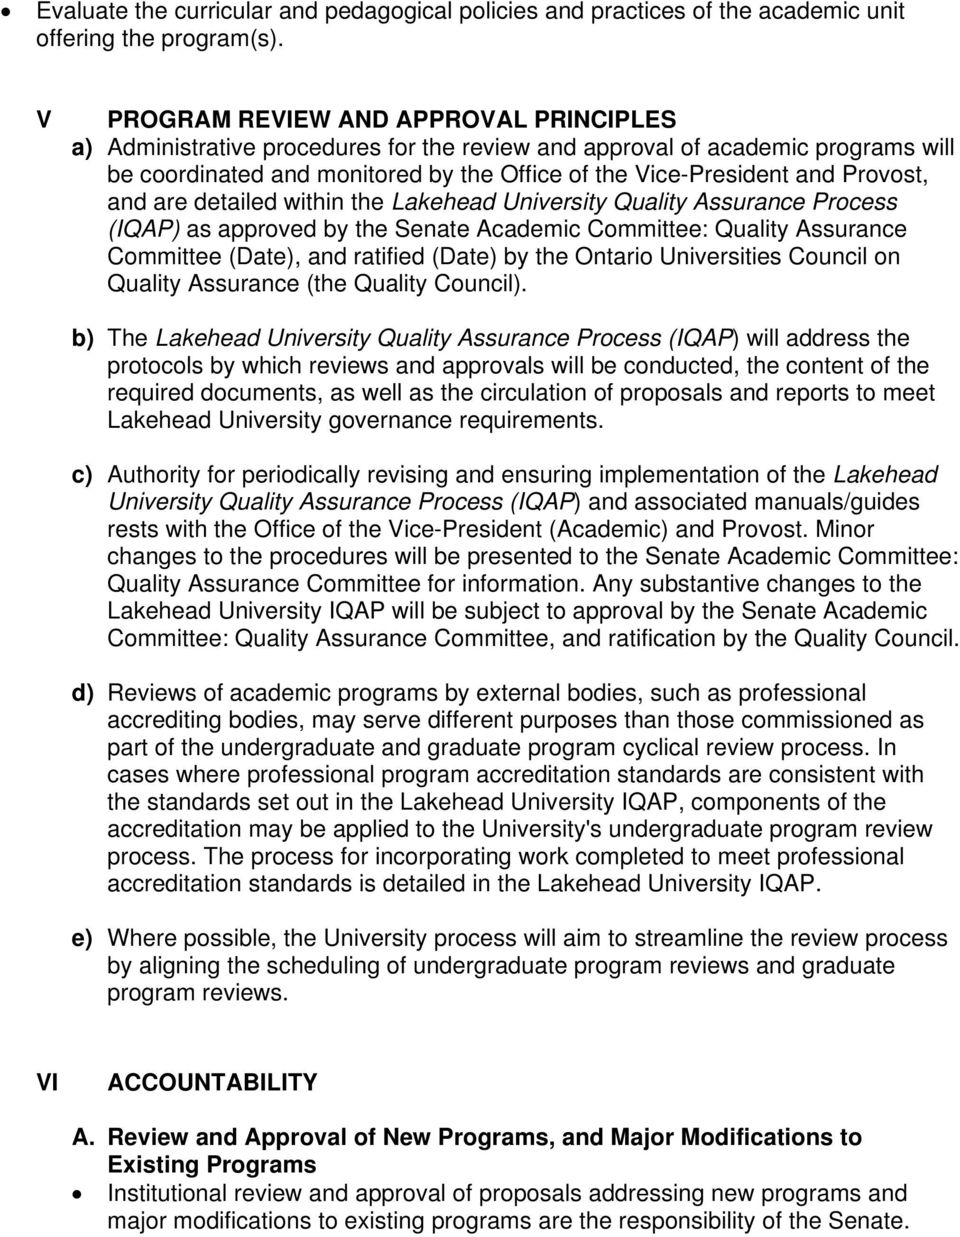 Provost, and are detailed within the Lakehead University Quality Assurance Process (IQAP) as approved by the Senate Academic Committee: Quality Assurance Committee (Date), and ratified (Date) by the